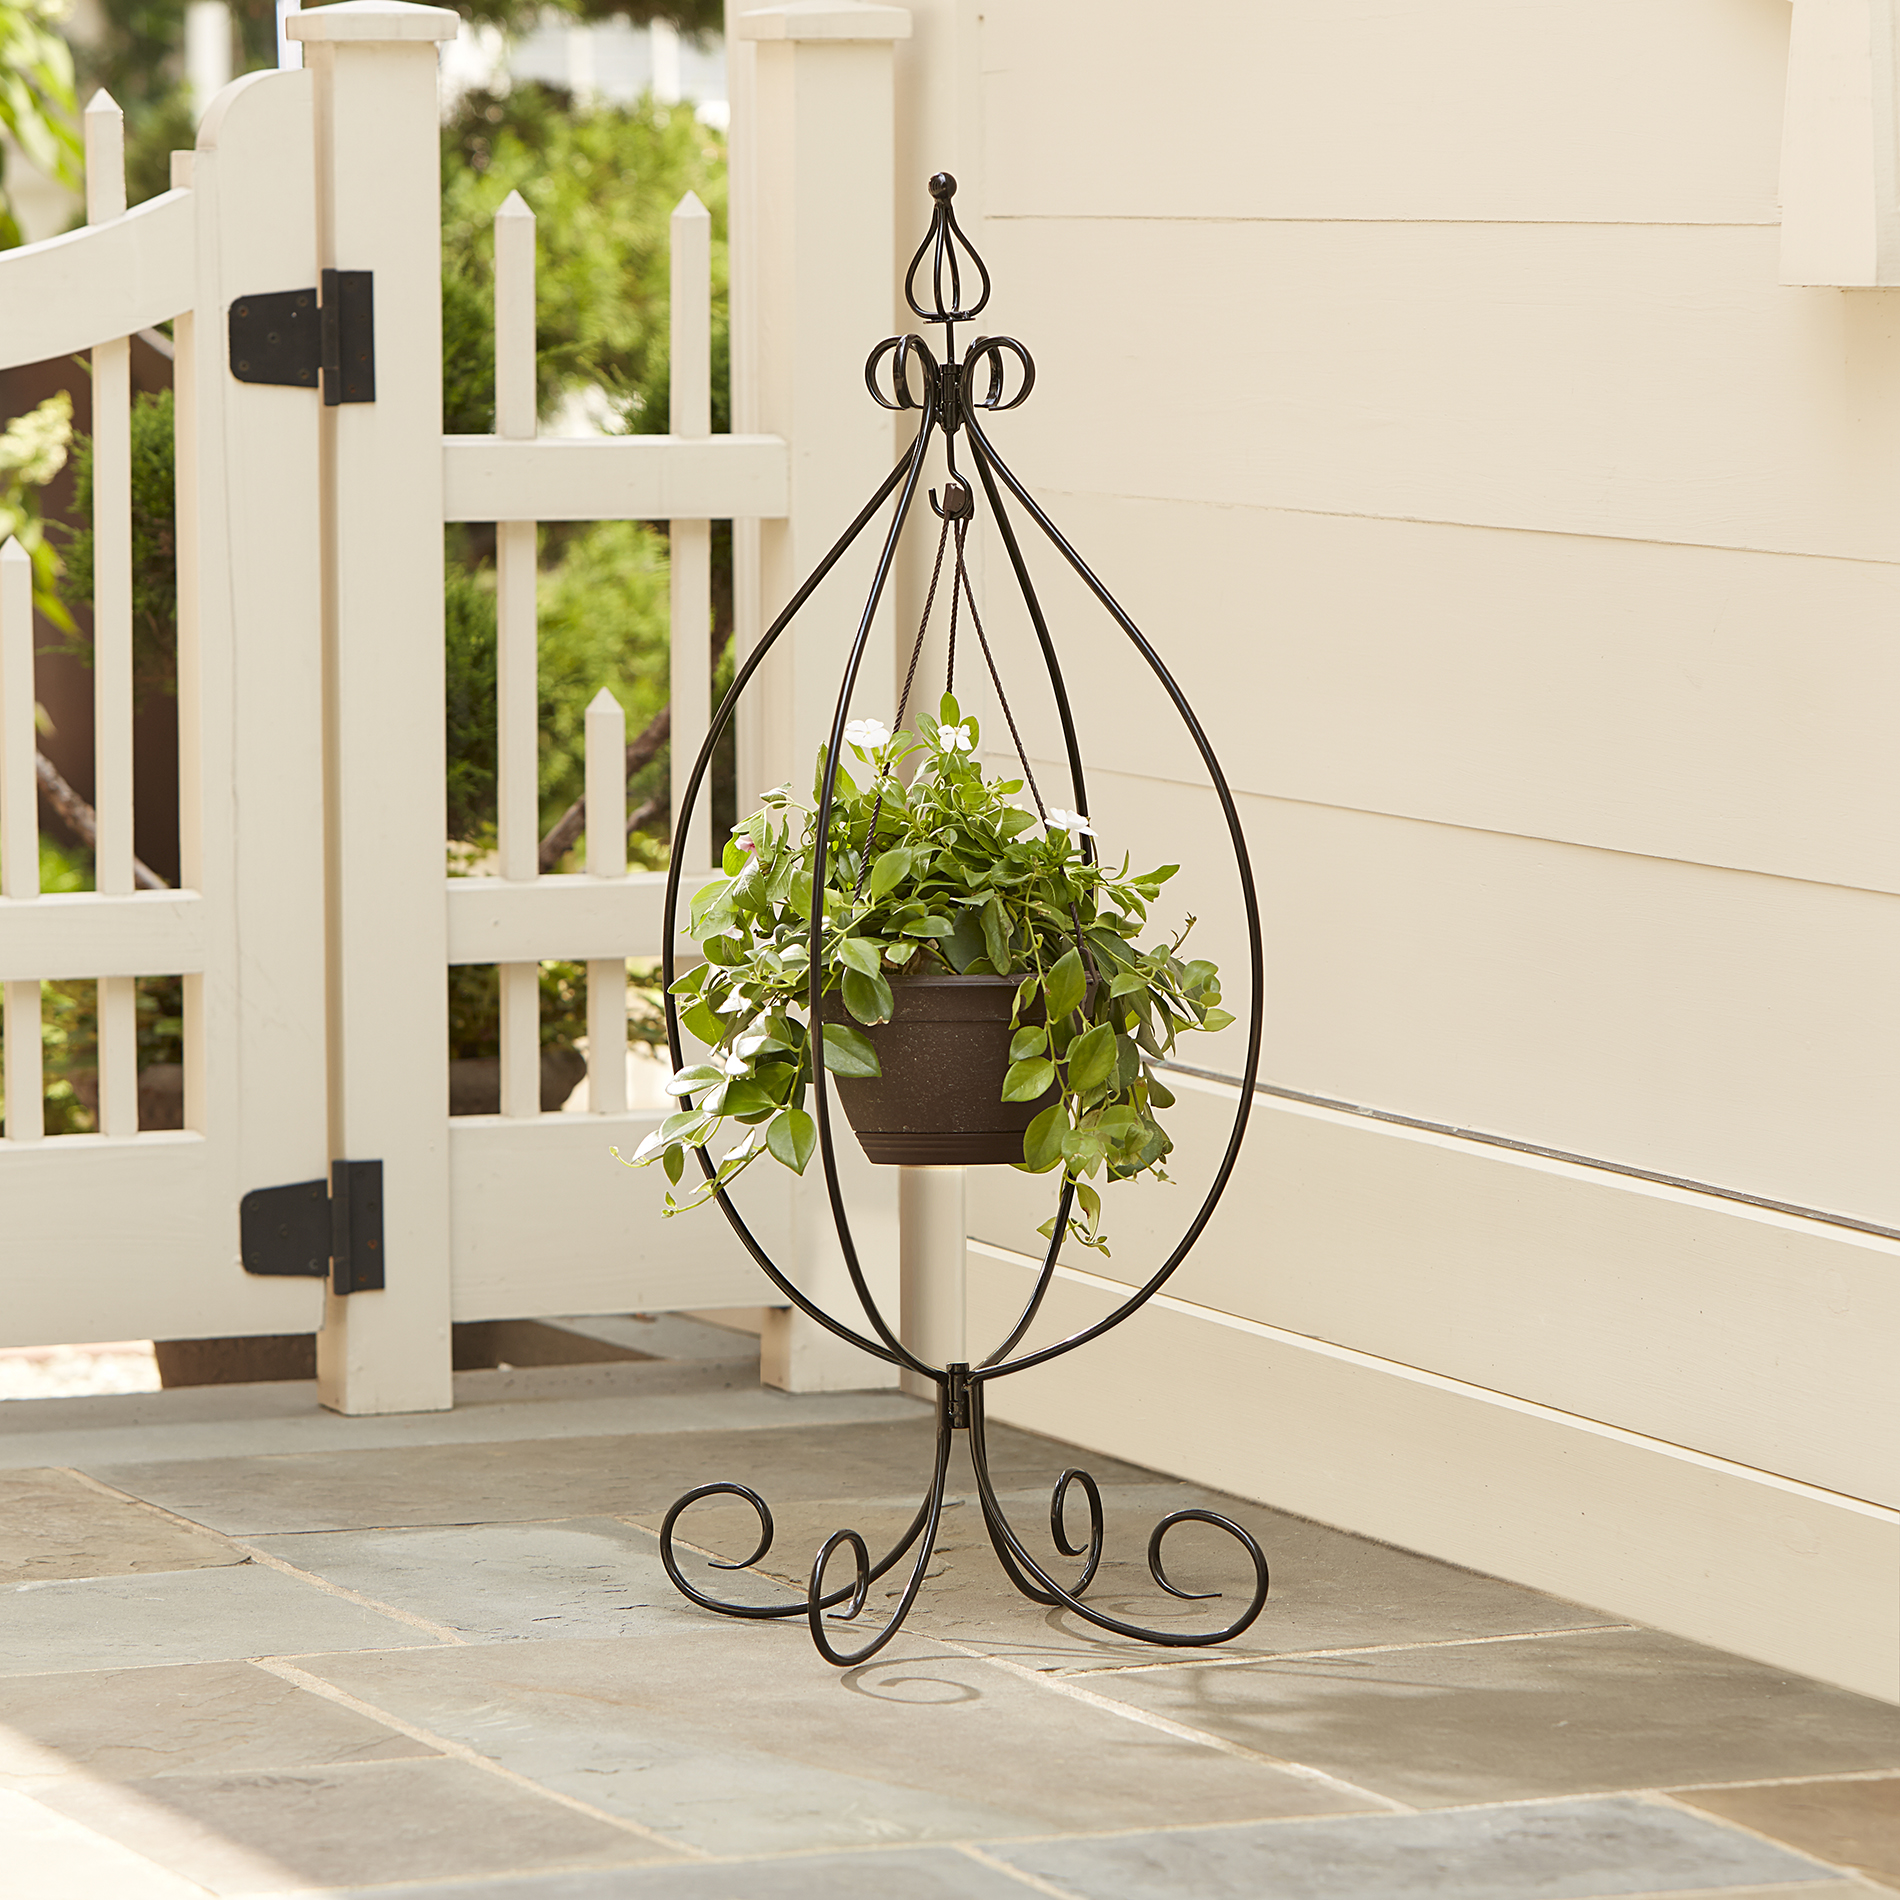 Indoor Wall Mounted Plant Holders Essential Garden Hanging Basket Plant Stand Shop Your